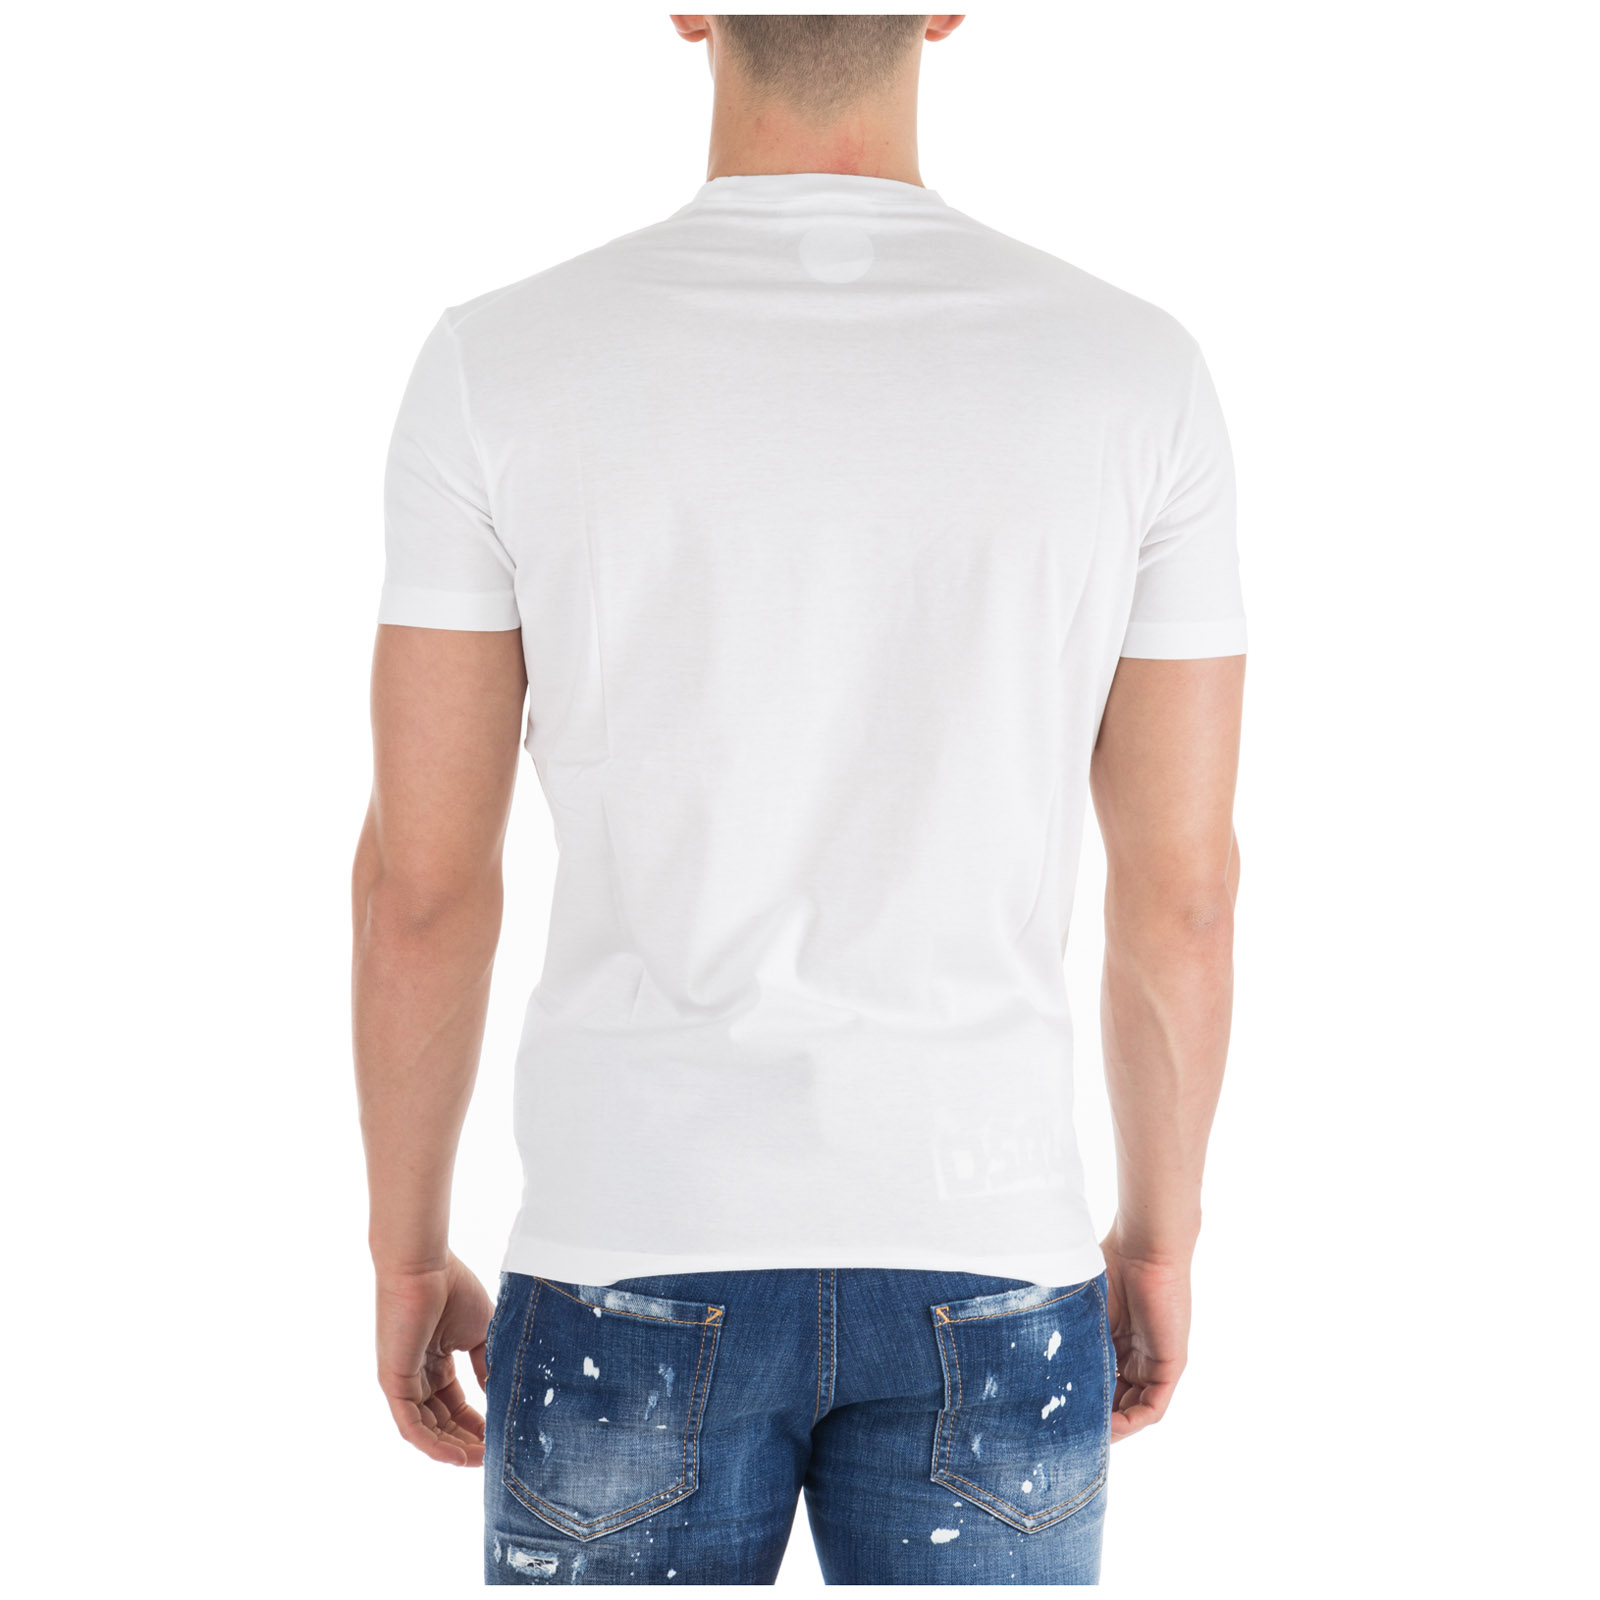 Men's short sleeve t-shirt crew neckline jumper